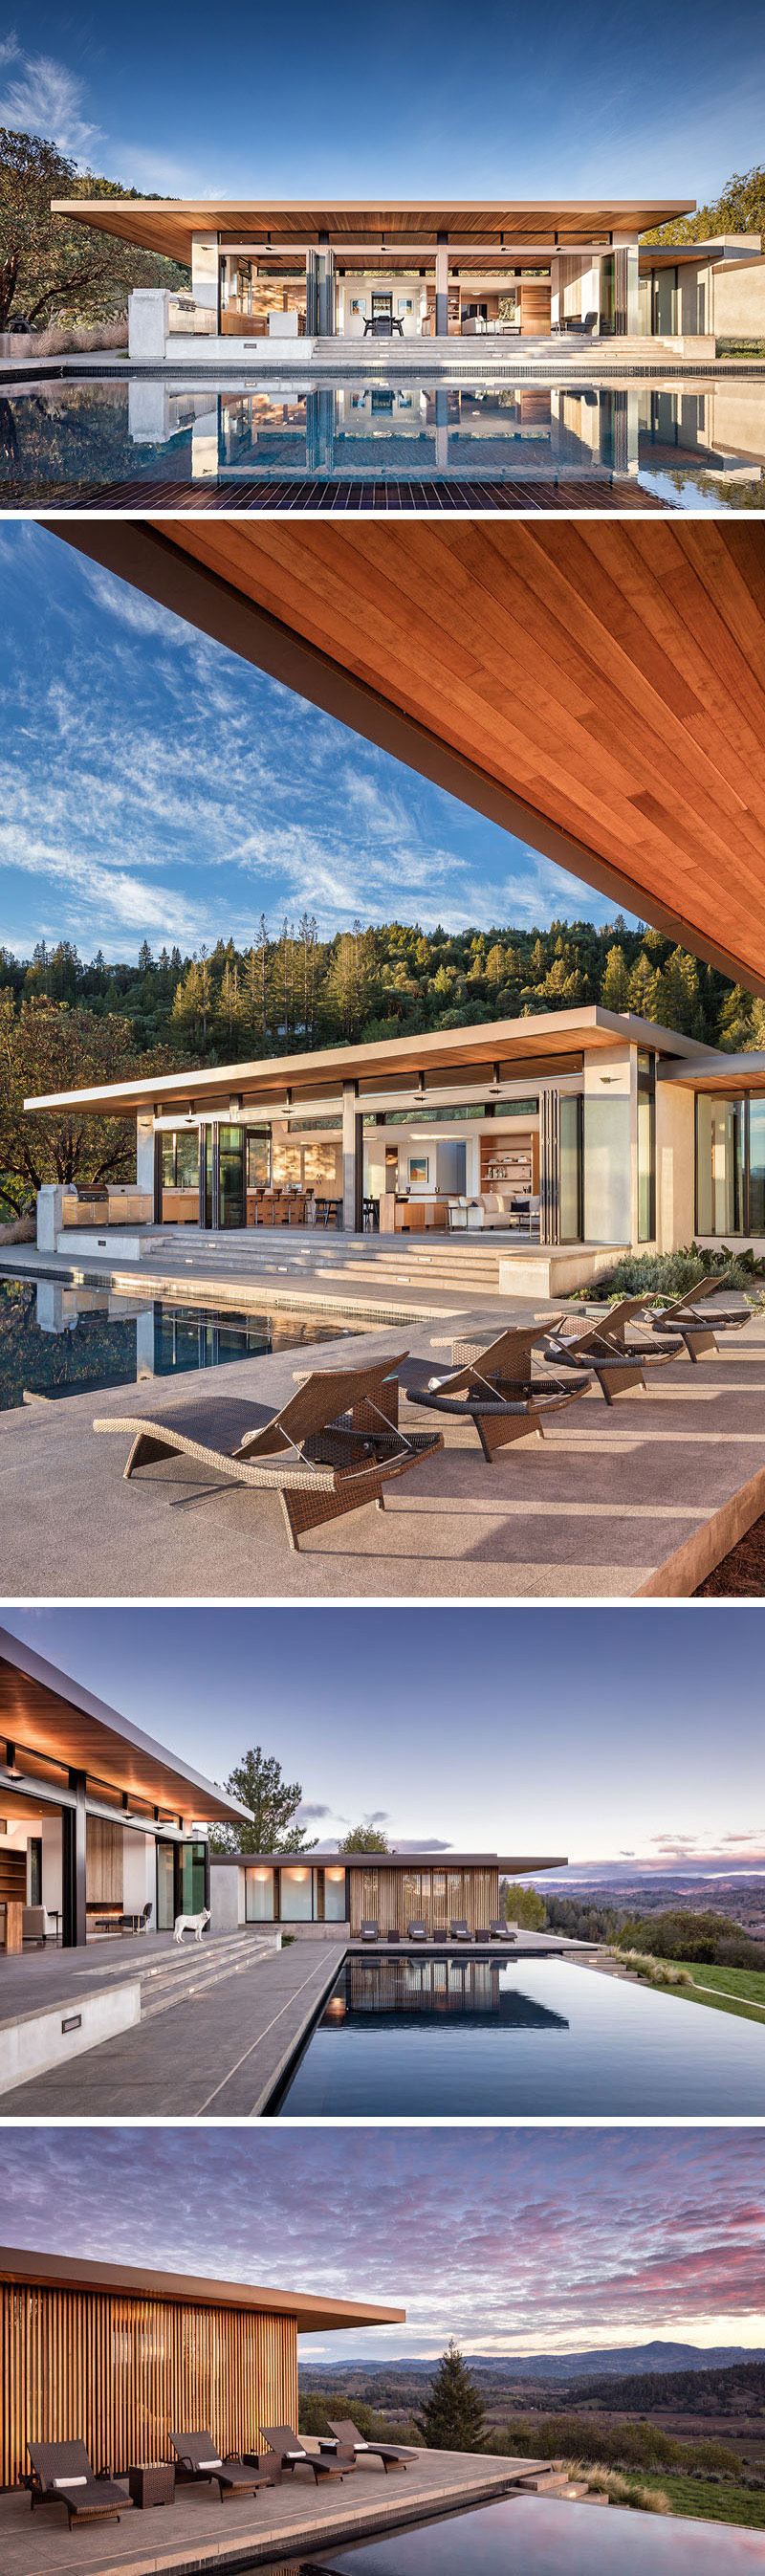 The layout of this modern house allows for seamless indoor-outdoor living experiences as each pavilion is positioned around a large deck and swimming pool. #ModernHouse #SwimmingPool #Architecture